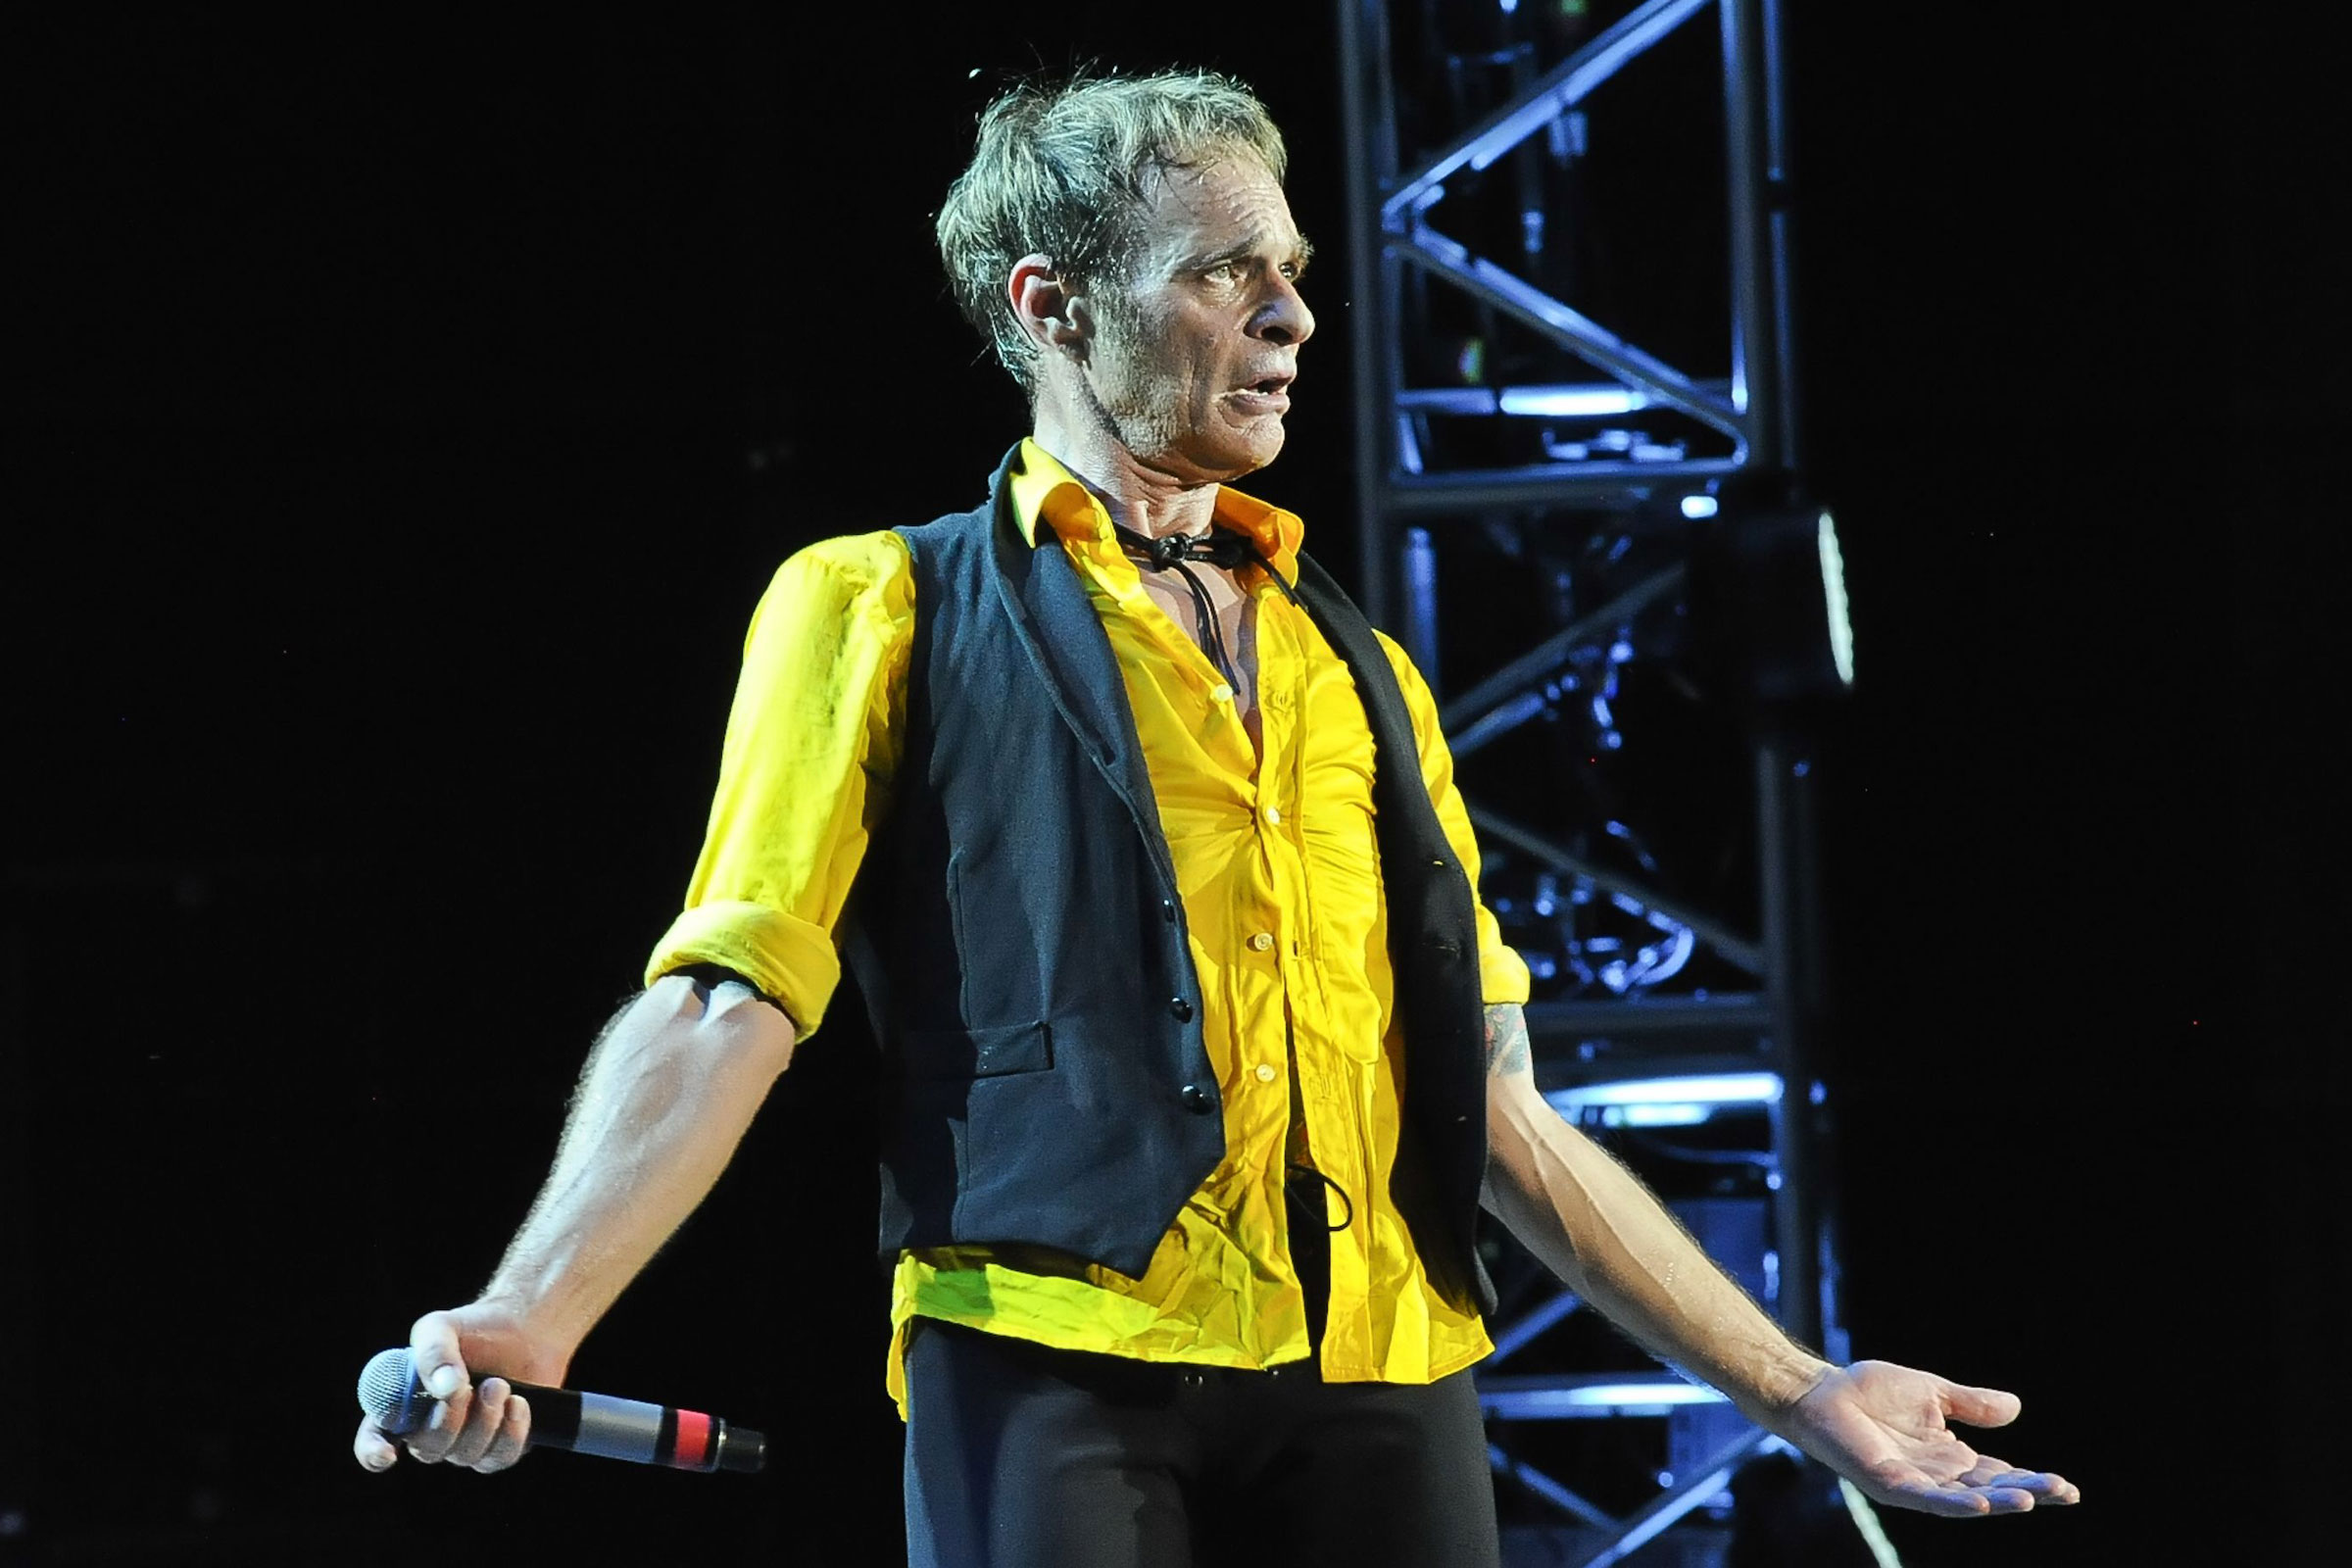 David Lee Roth Once Had a Fake Phone Number That Almost Ruined a Marriage - EpicNews